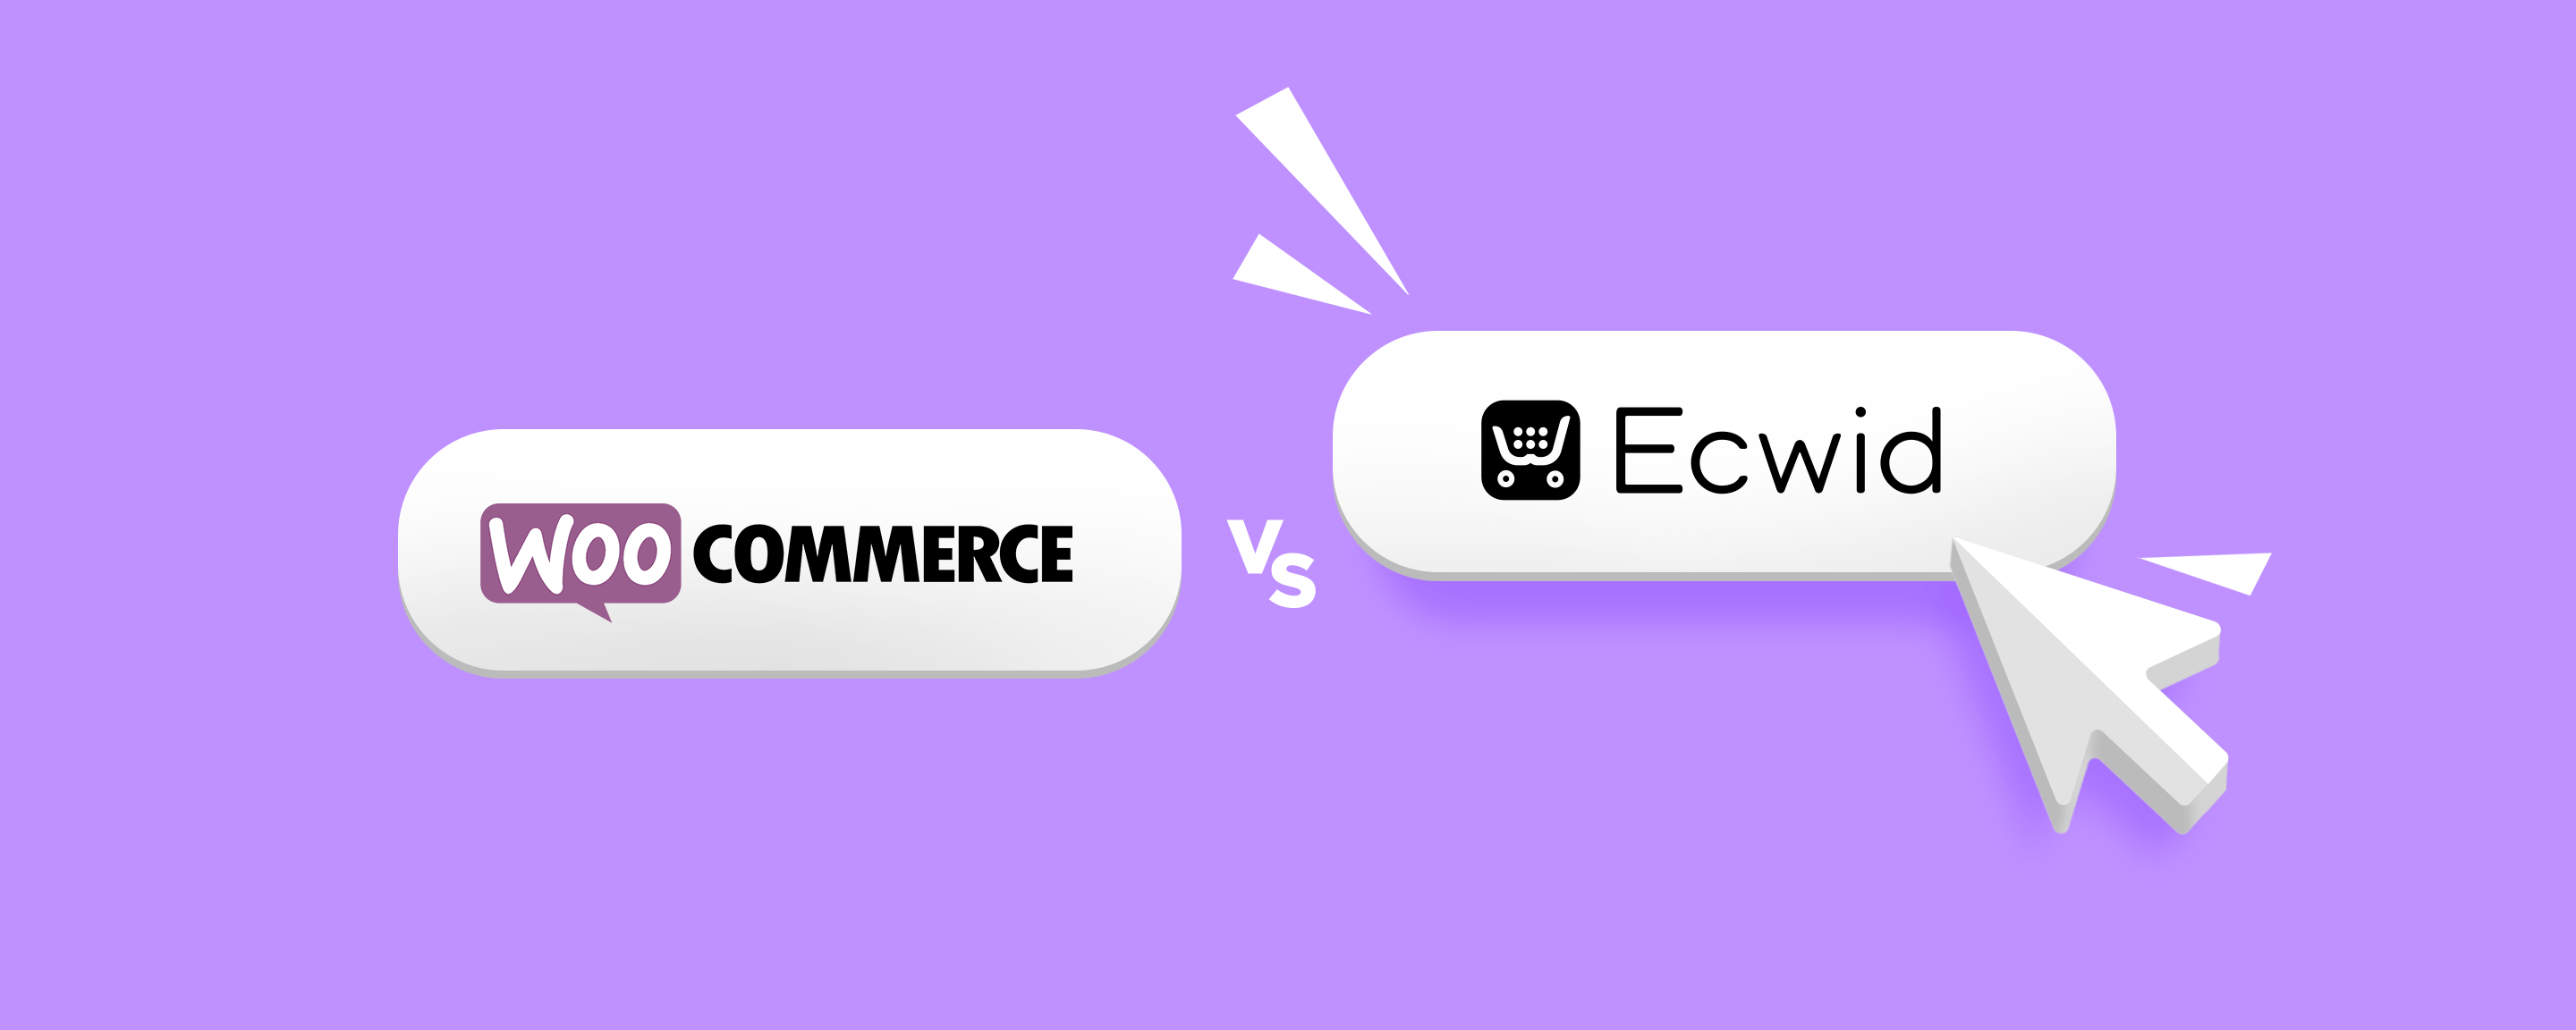 Why-Ecwid-is-the-Best-Woocommerce-Alternative